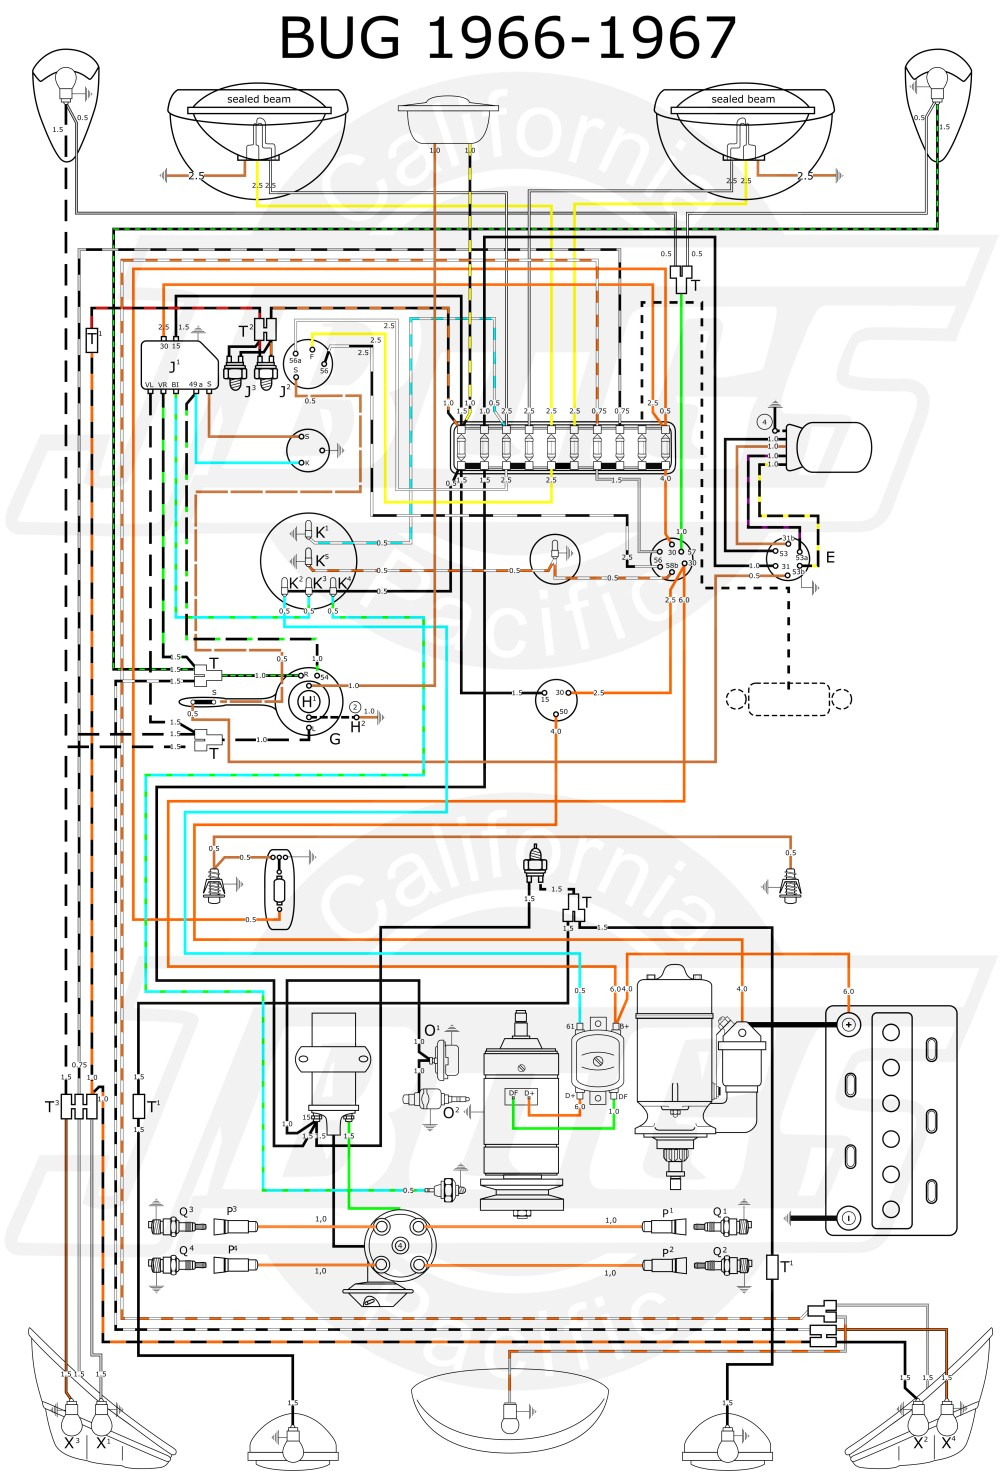 medium resolution of 67 nova wiper motor wiring diagram wiring library rh 12 bloxhuette de 65 nova wiring diagram 67 nova dash wiring diagram